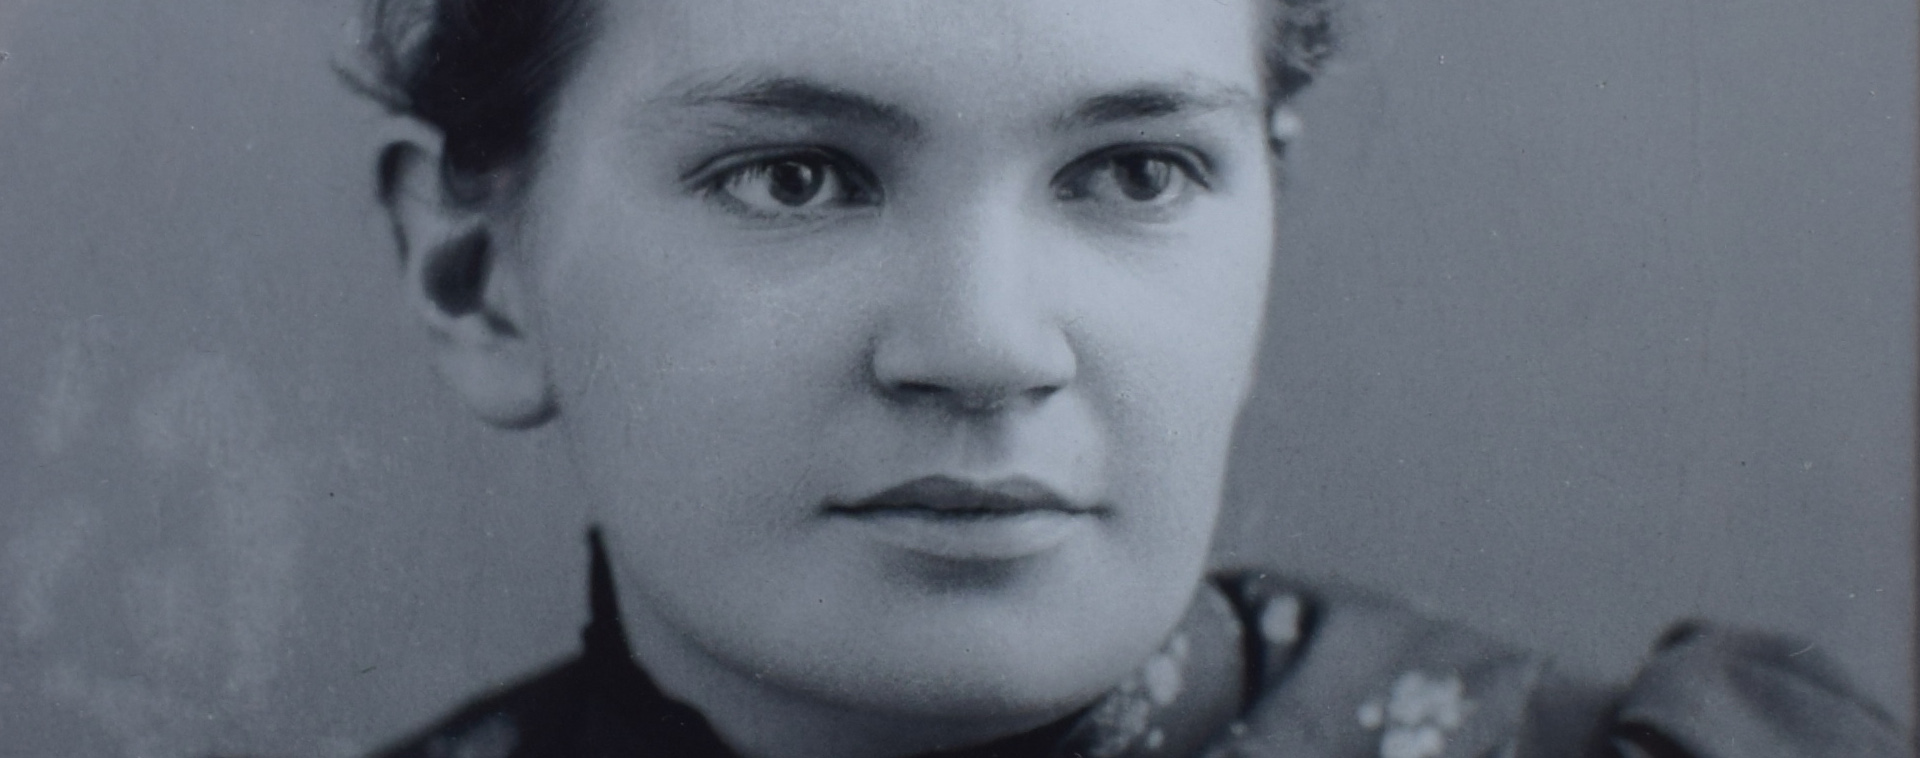 Photograph showing the face of Dr. Maude Elizabeth Abbott in a panoramic close-up. She is young and wears a flowered dress. Her gaze is piercing. She smiles peacefully. She is 22 years old.